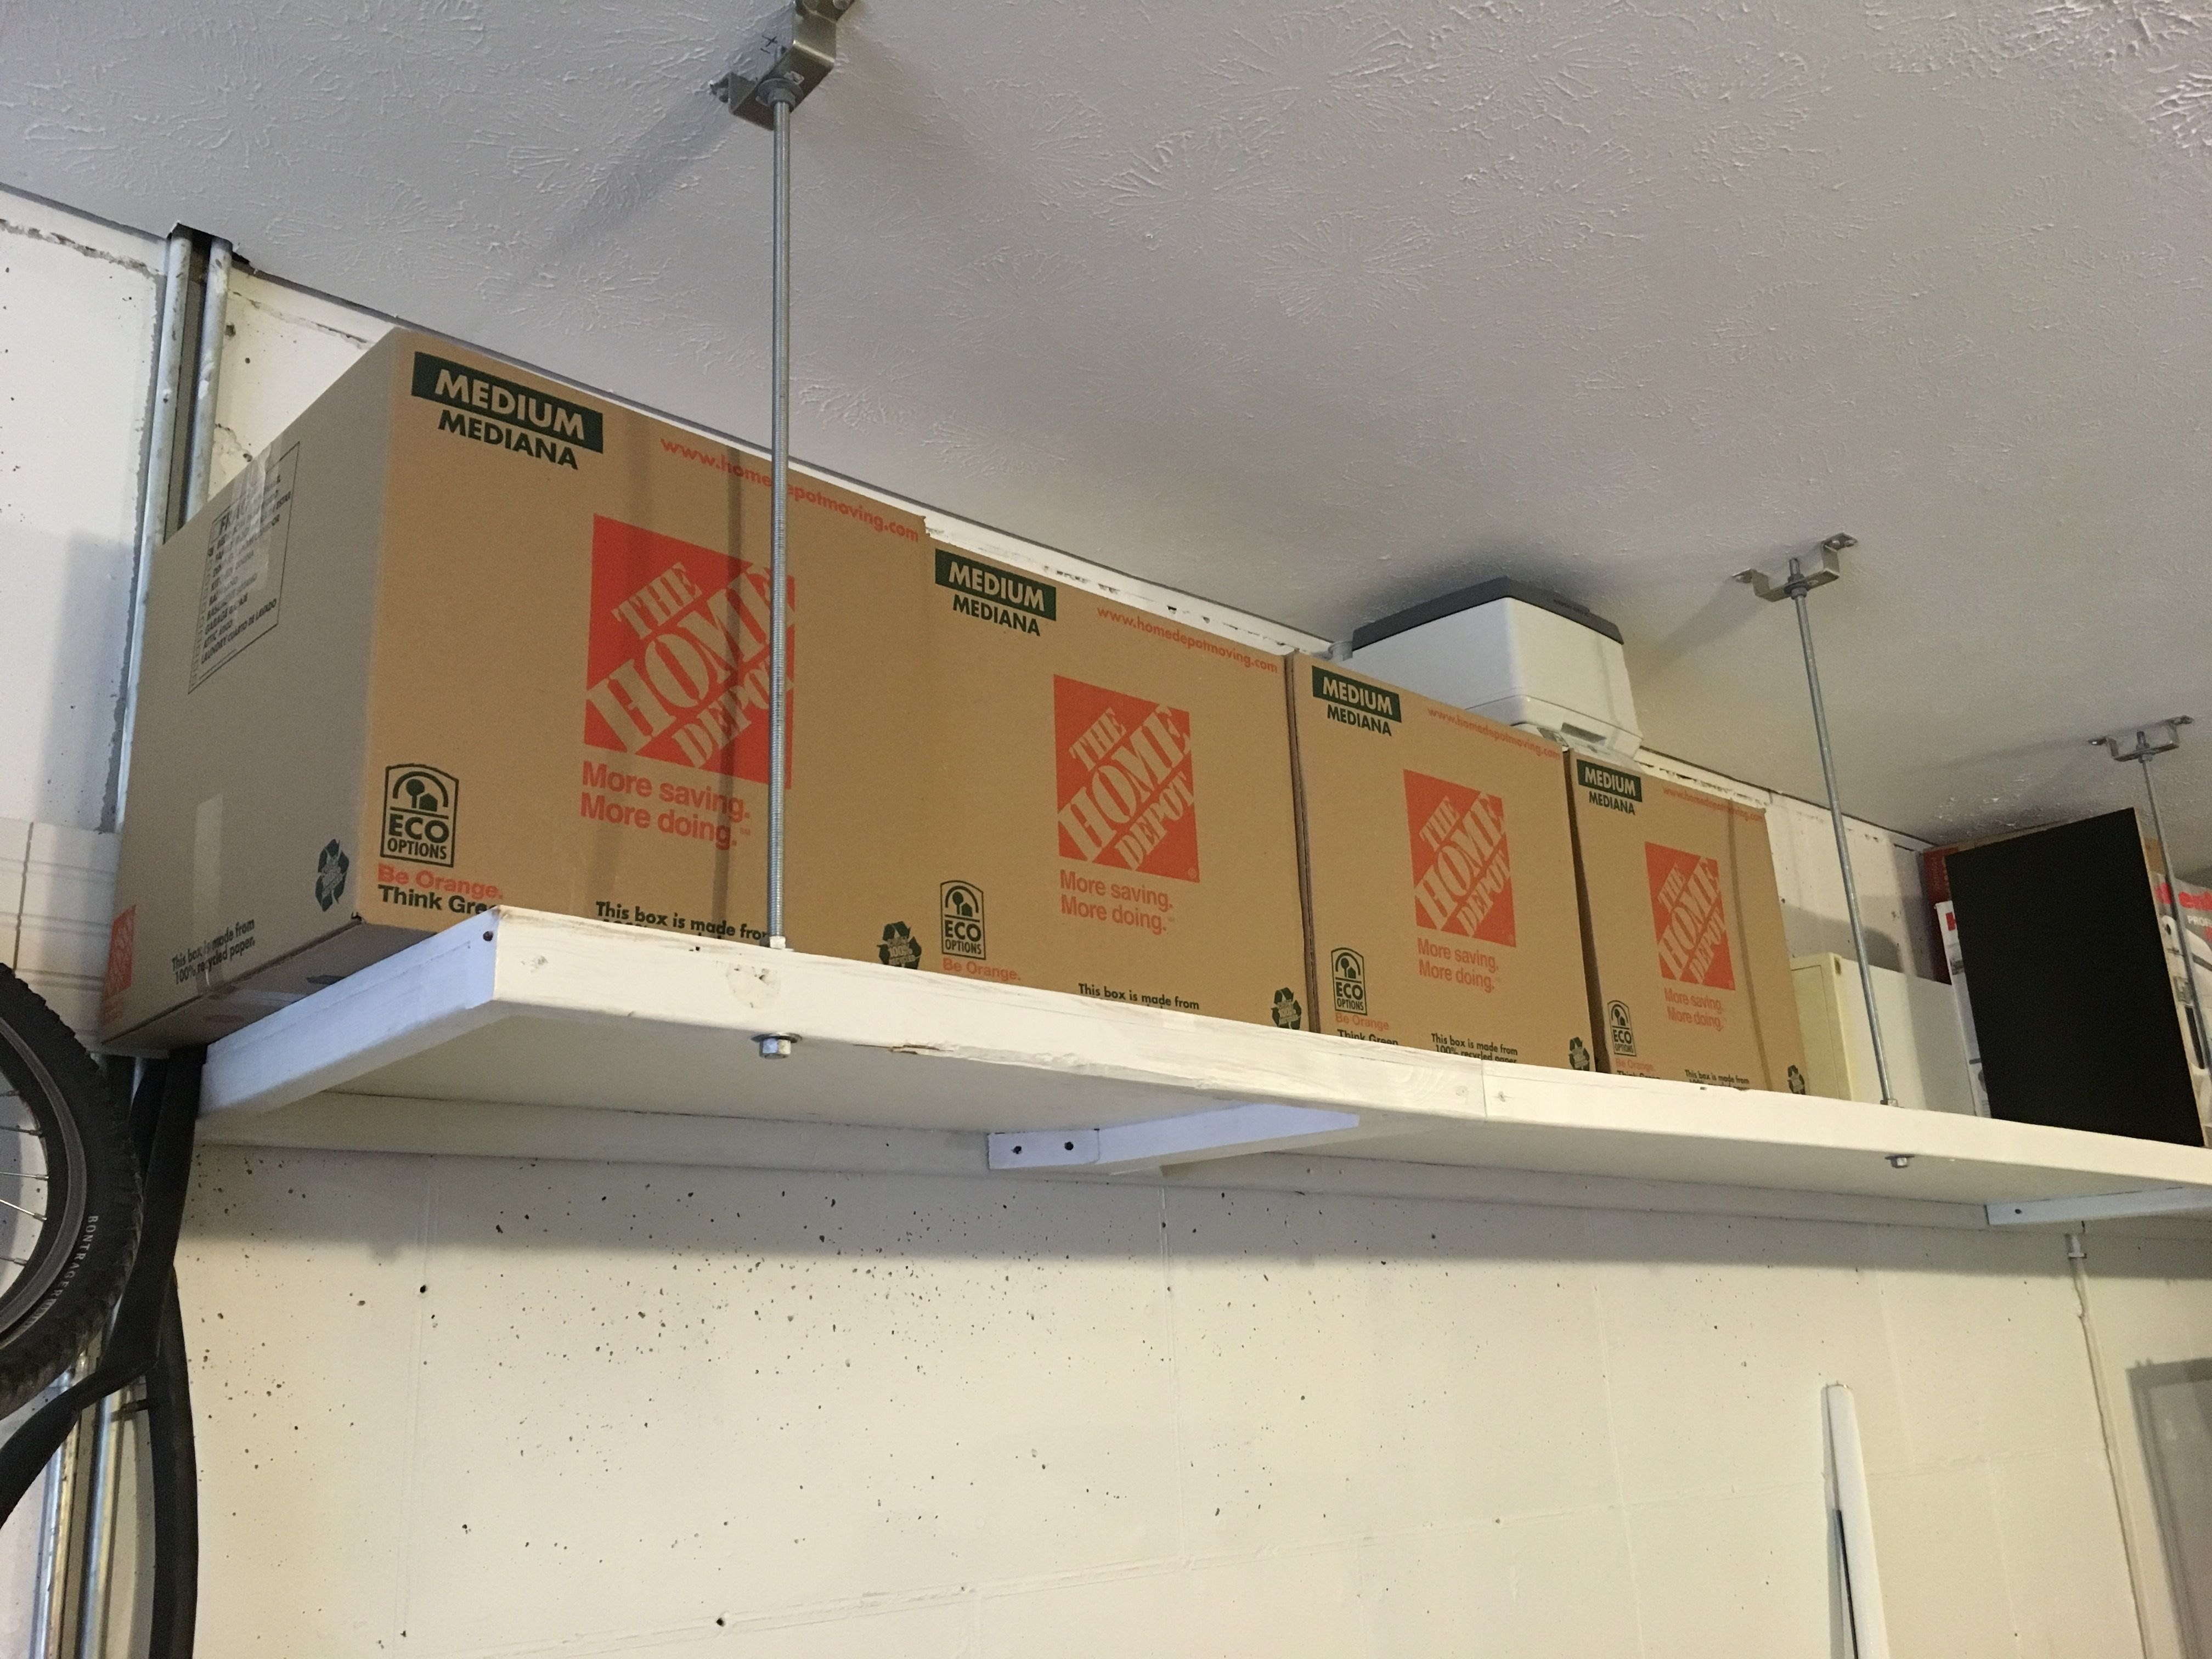 My solution for overhead storage in our garage requiring lagging